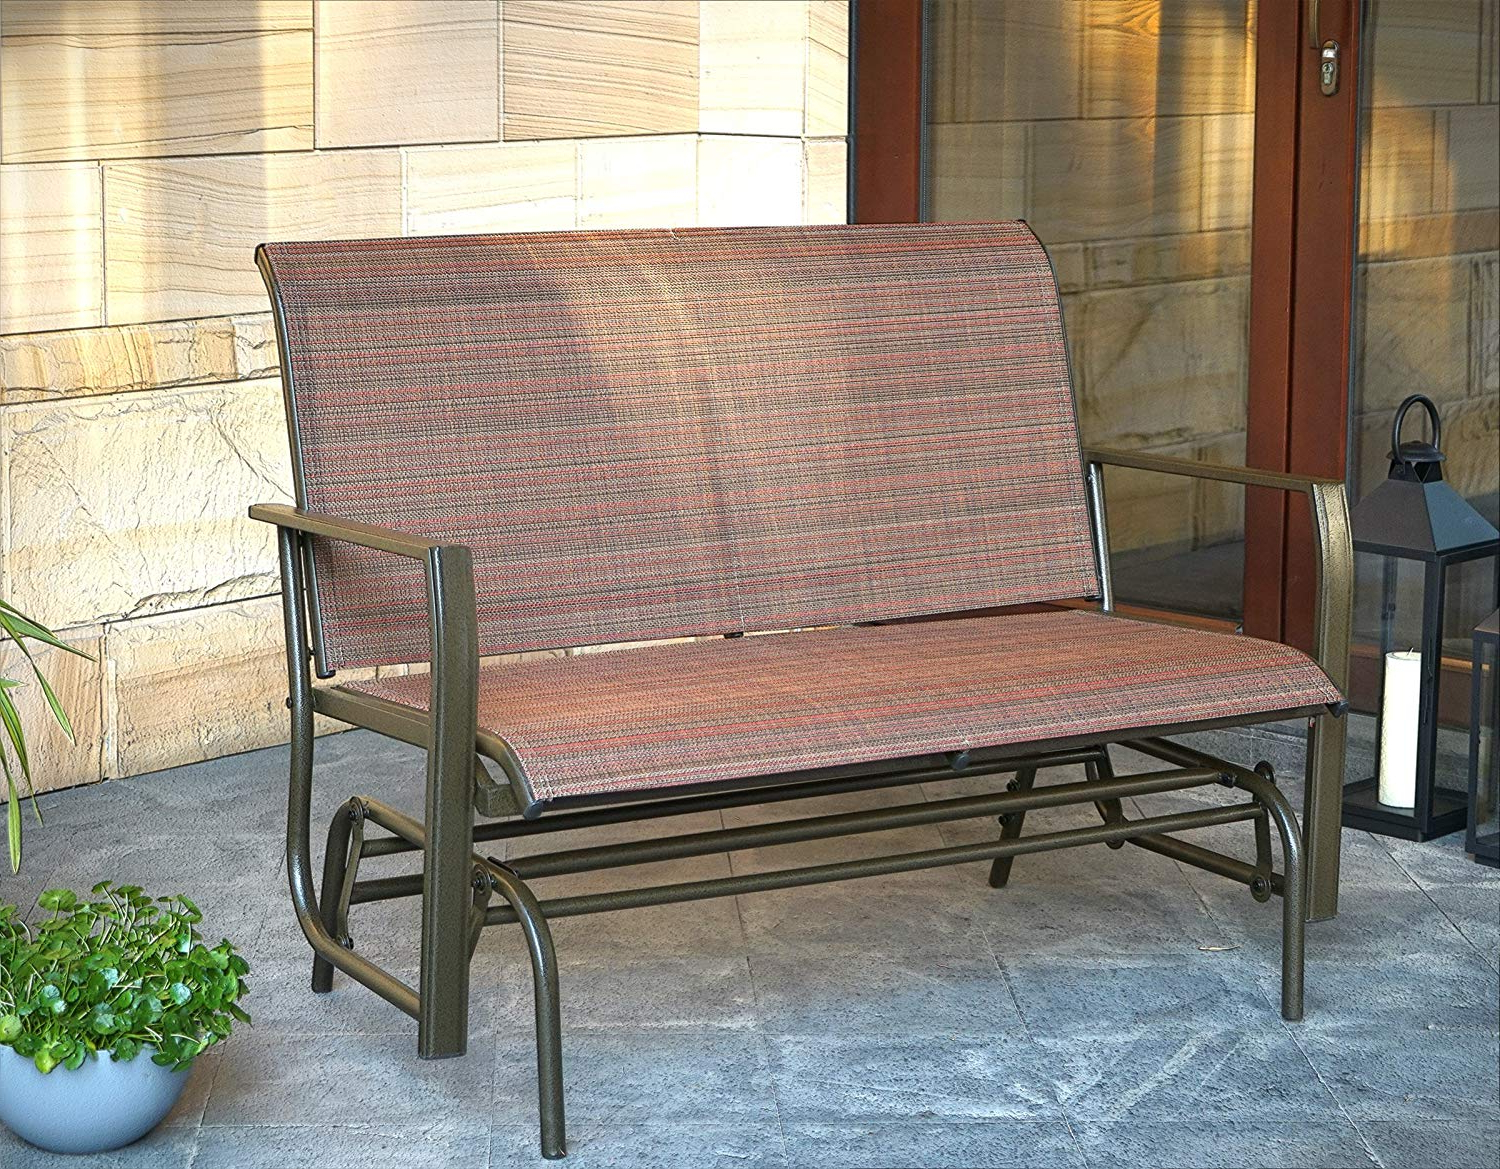 Kozyard Cozy Two Rocking Love Seats Glider Swing Bench/rocker For Patio,  Yard With Textilence Seats And Sturdy Frame (Tan) Throughout Most Up To Date Rocking Love Seats Glider Swing Benches With Sturdy Frame (View 8 of 30)